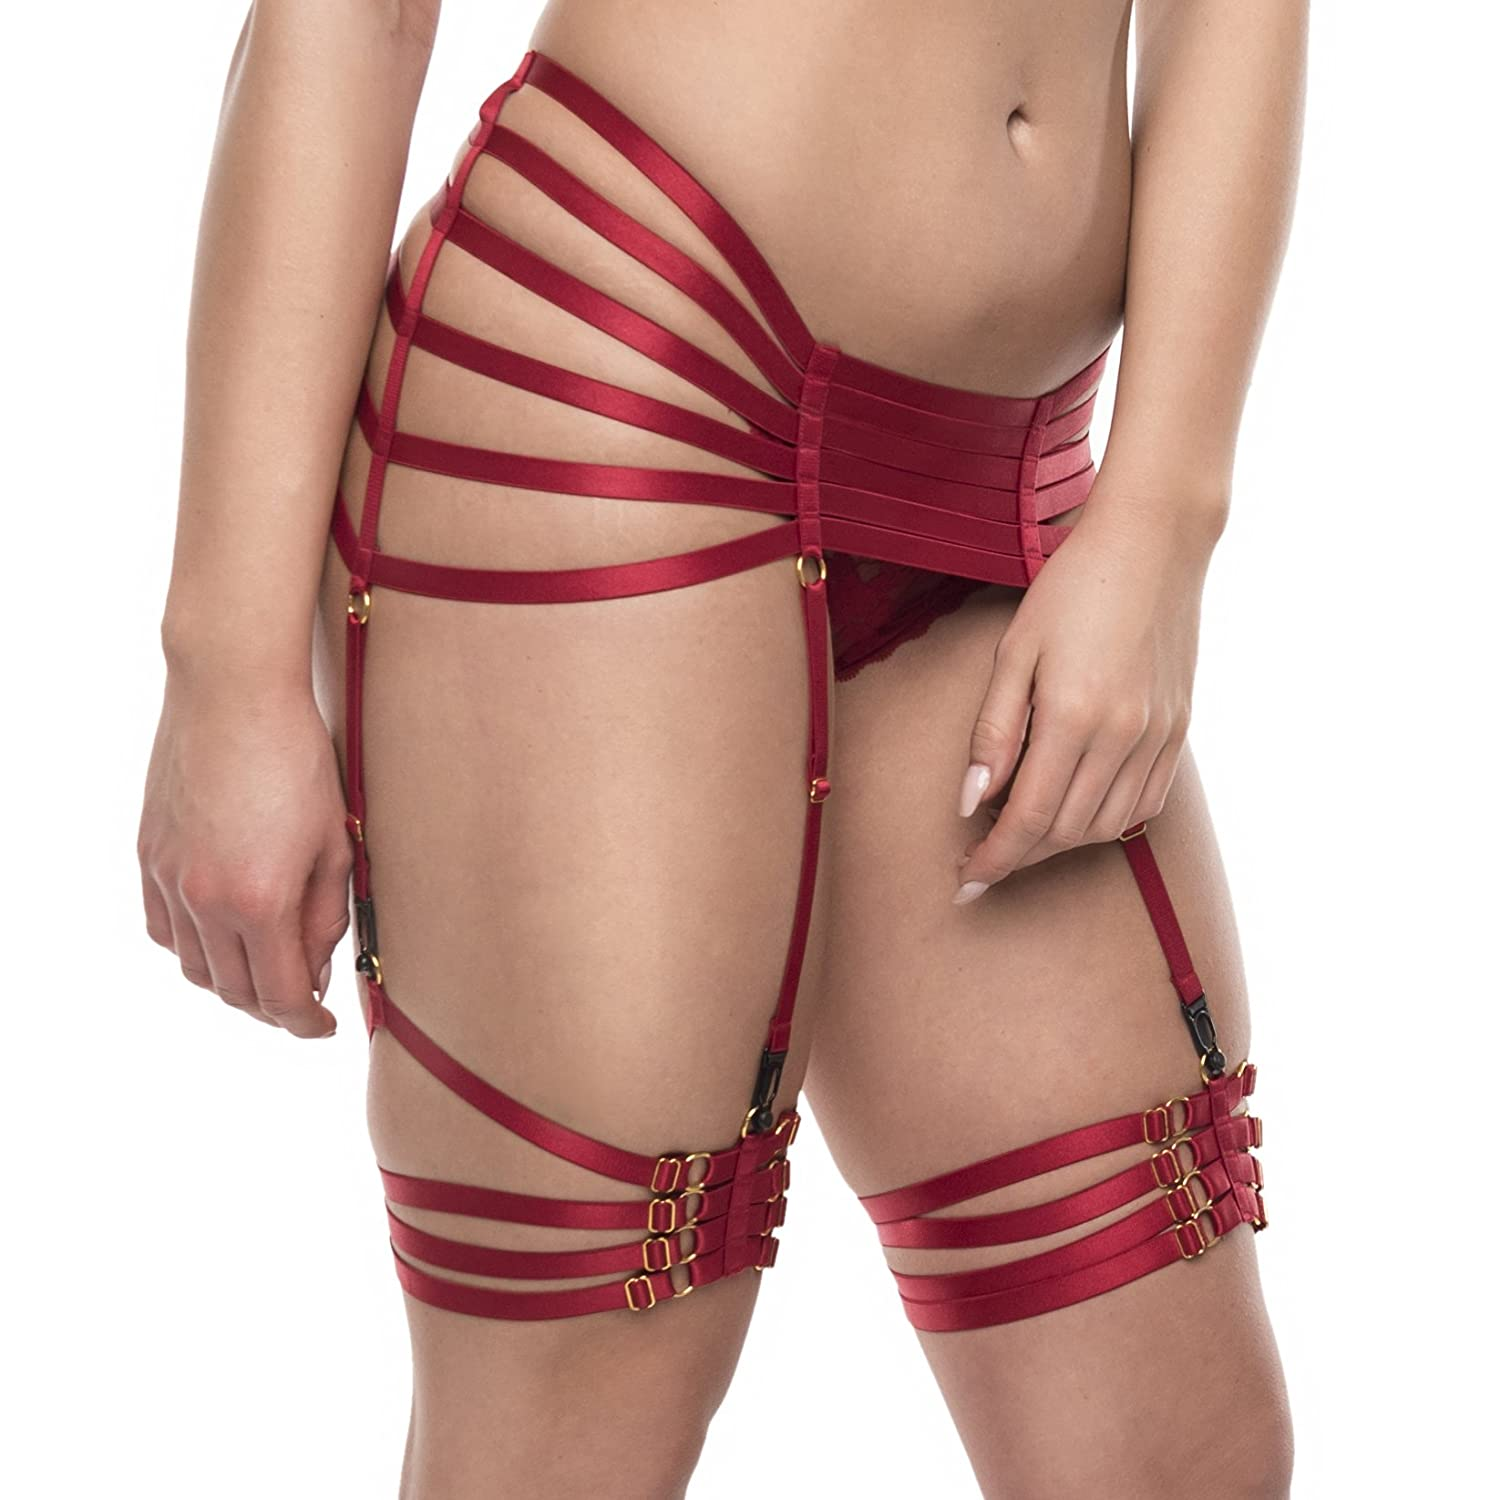 BBOHSS Women Red Strappy Harness Garter Belts Leg Caged Body Harness Goth Punk